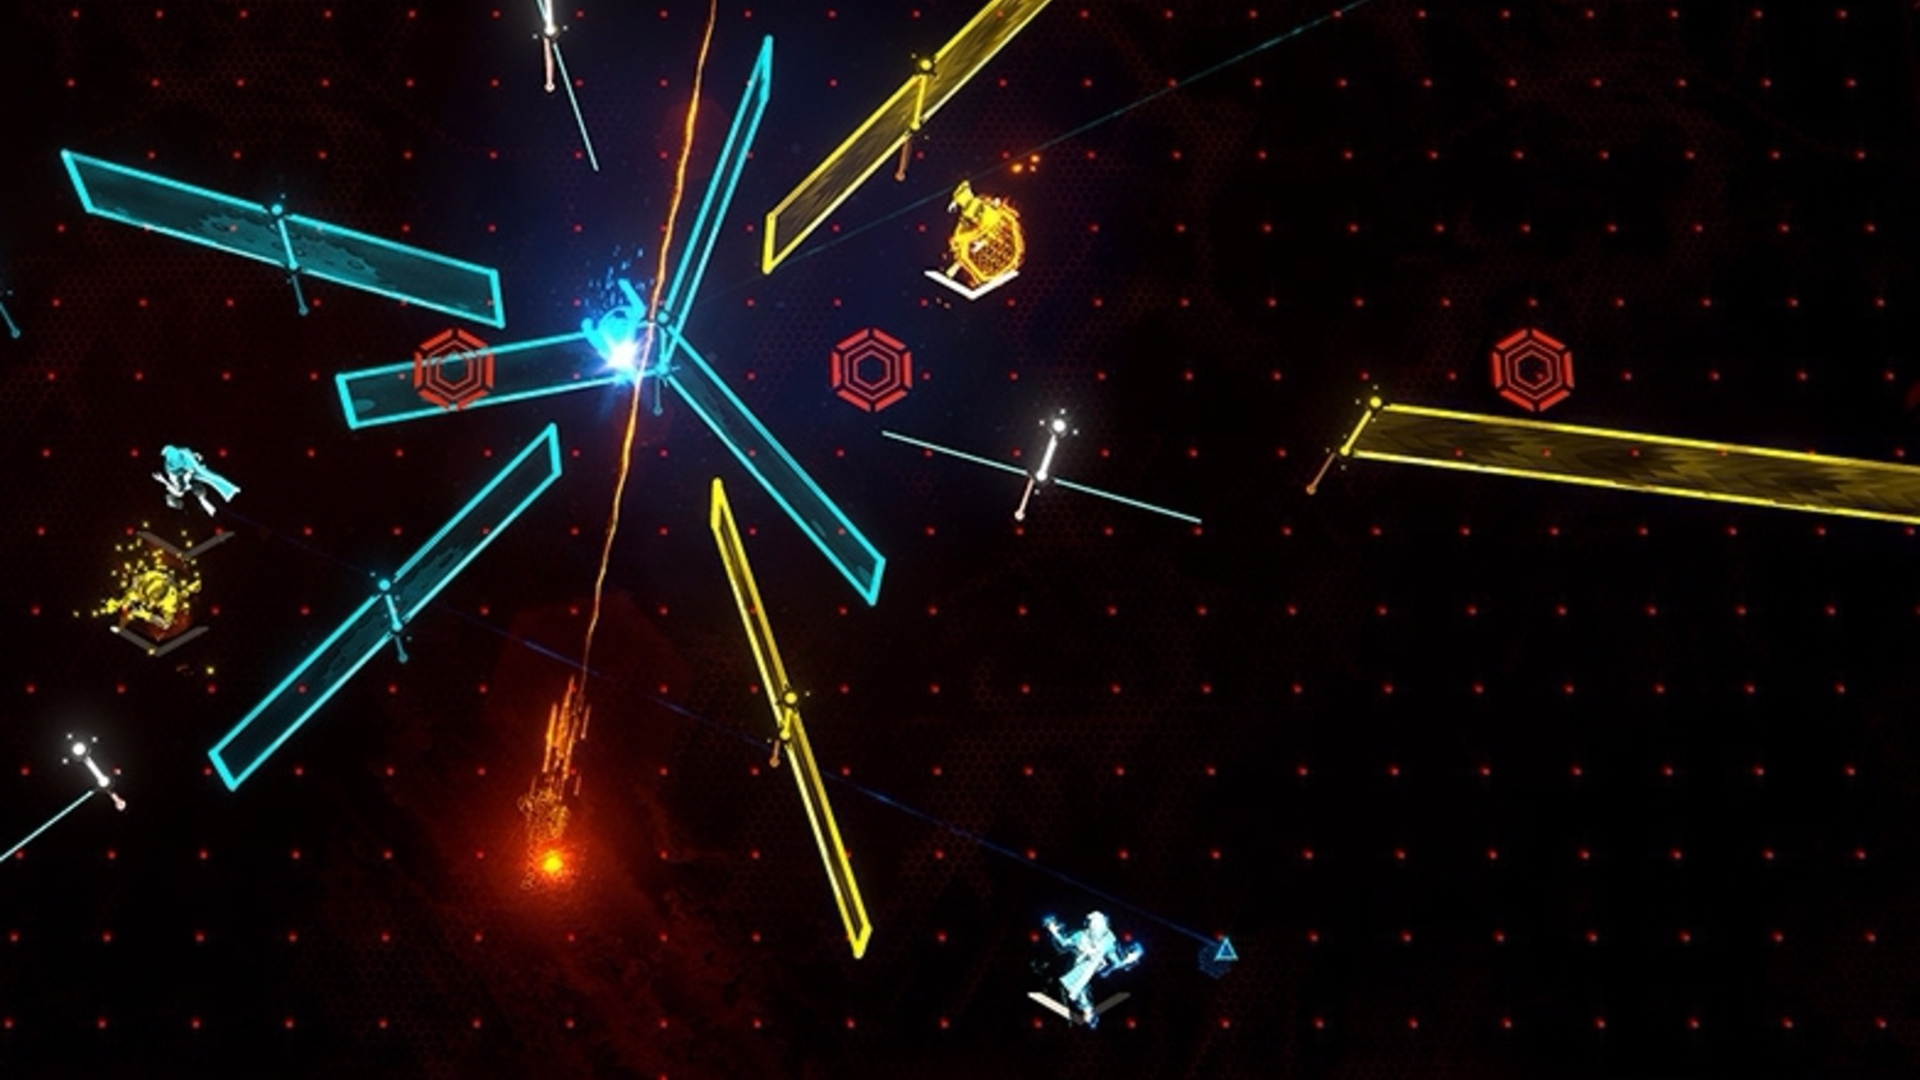 Laser League could join Towerfall and Nidhogg as the next multiplayer great